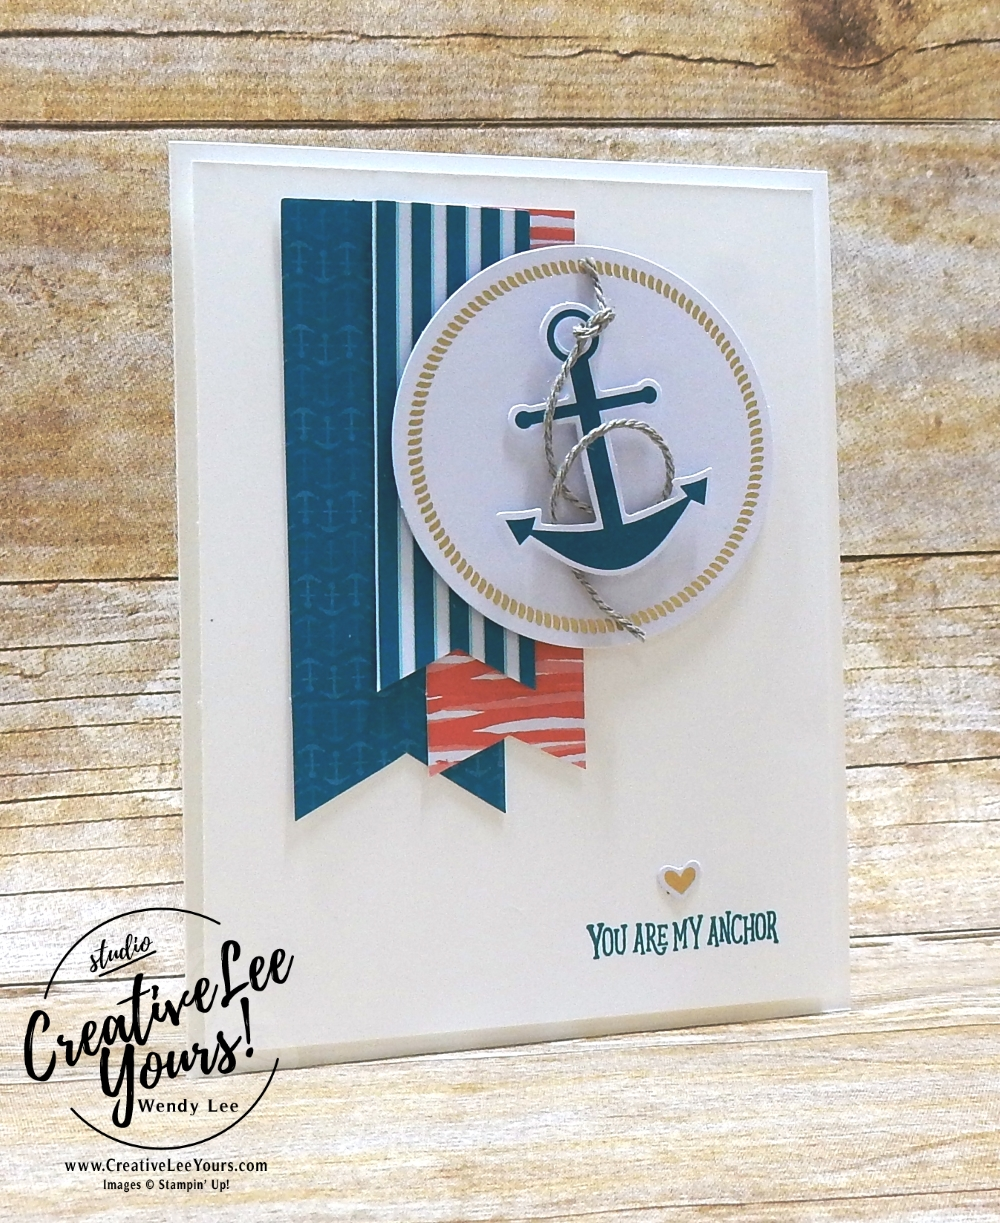 April 2018 You Are My Anchor Paper Pumpkin Kit by wendy lee, stampin up, handmade cards, rubber stamps, stamping, kit, subscription, nautical cards, thank you, congrats, friend, #creativeleeyours, creatively yours, creative-lee yours, SU, SU cards, masculine